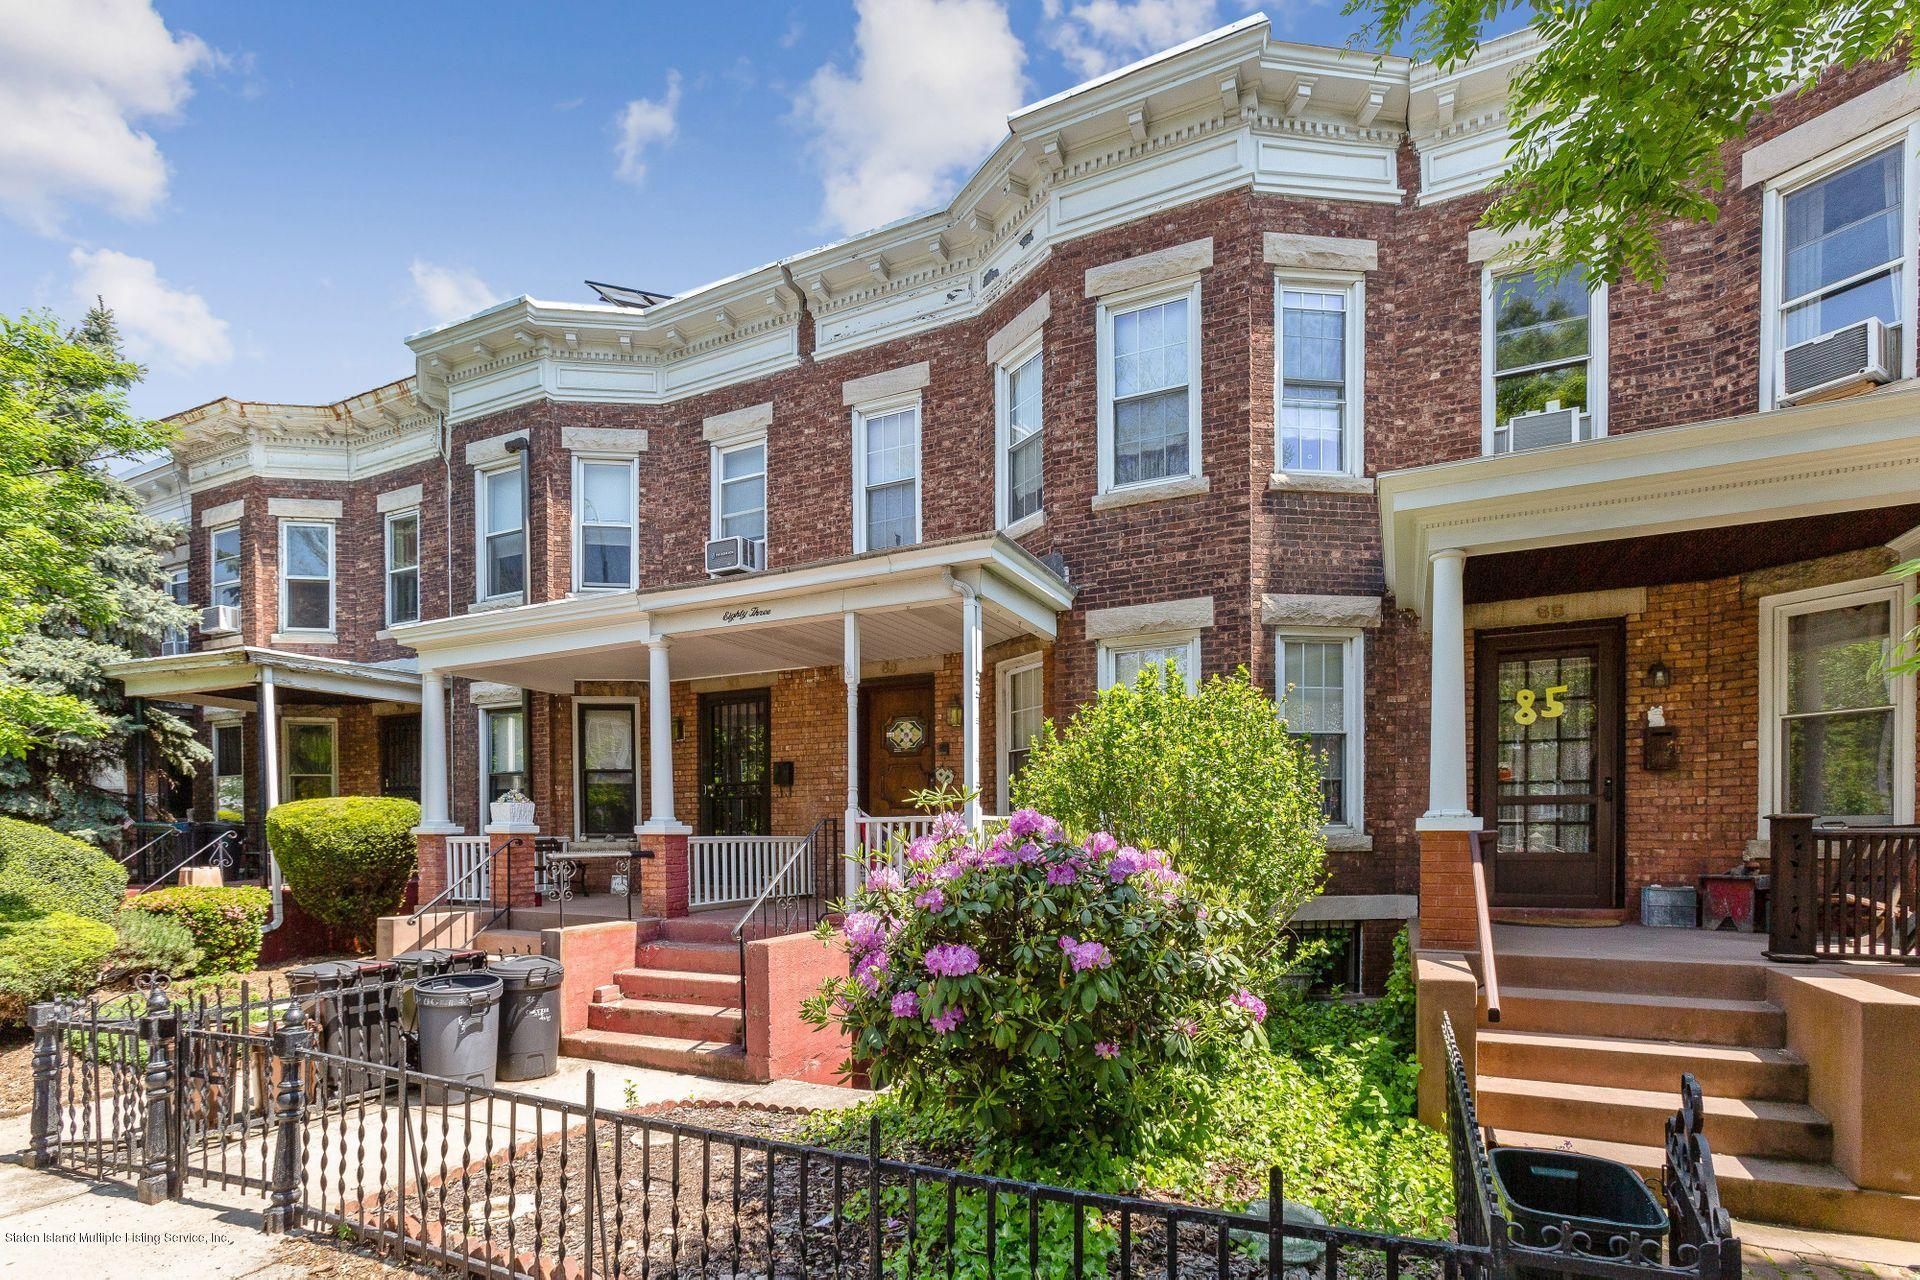 Single Family - Attached 83 Chester Avenue  Brooklyn, NY 11218, MLS-1134106-2